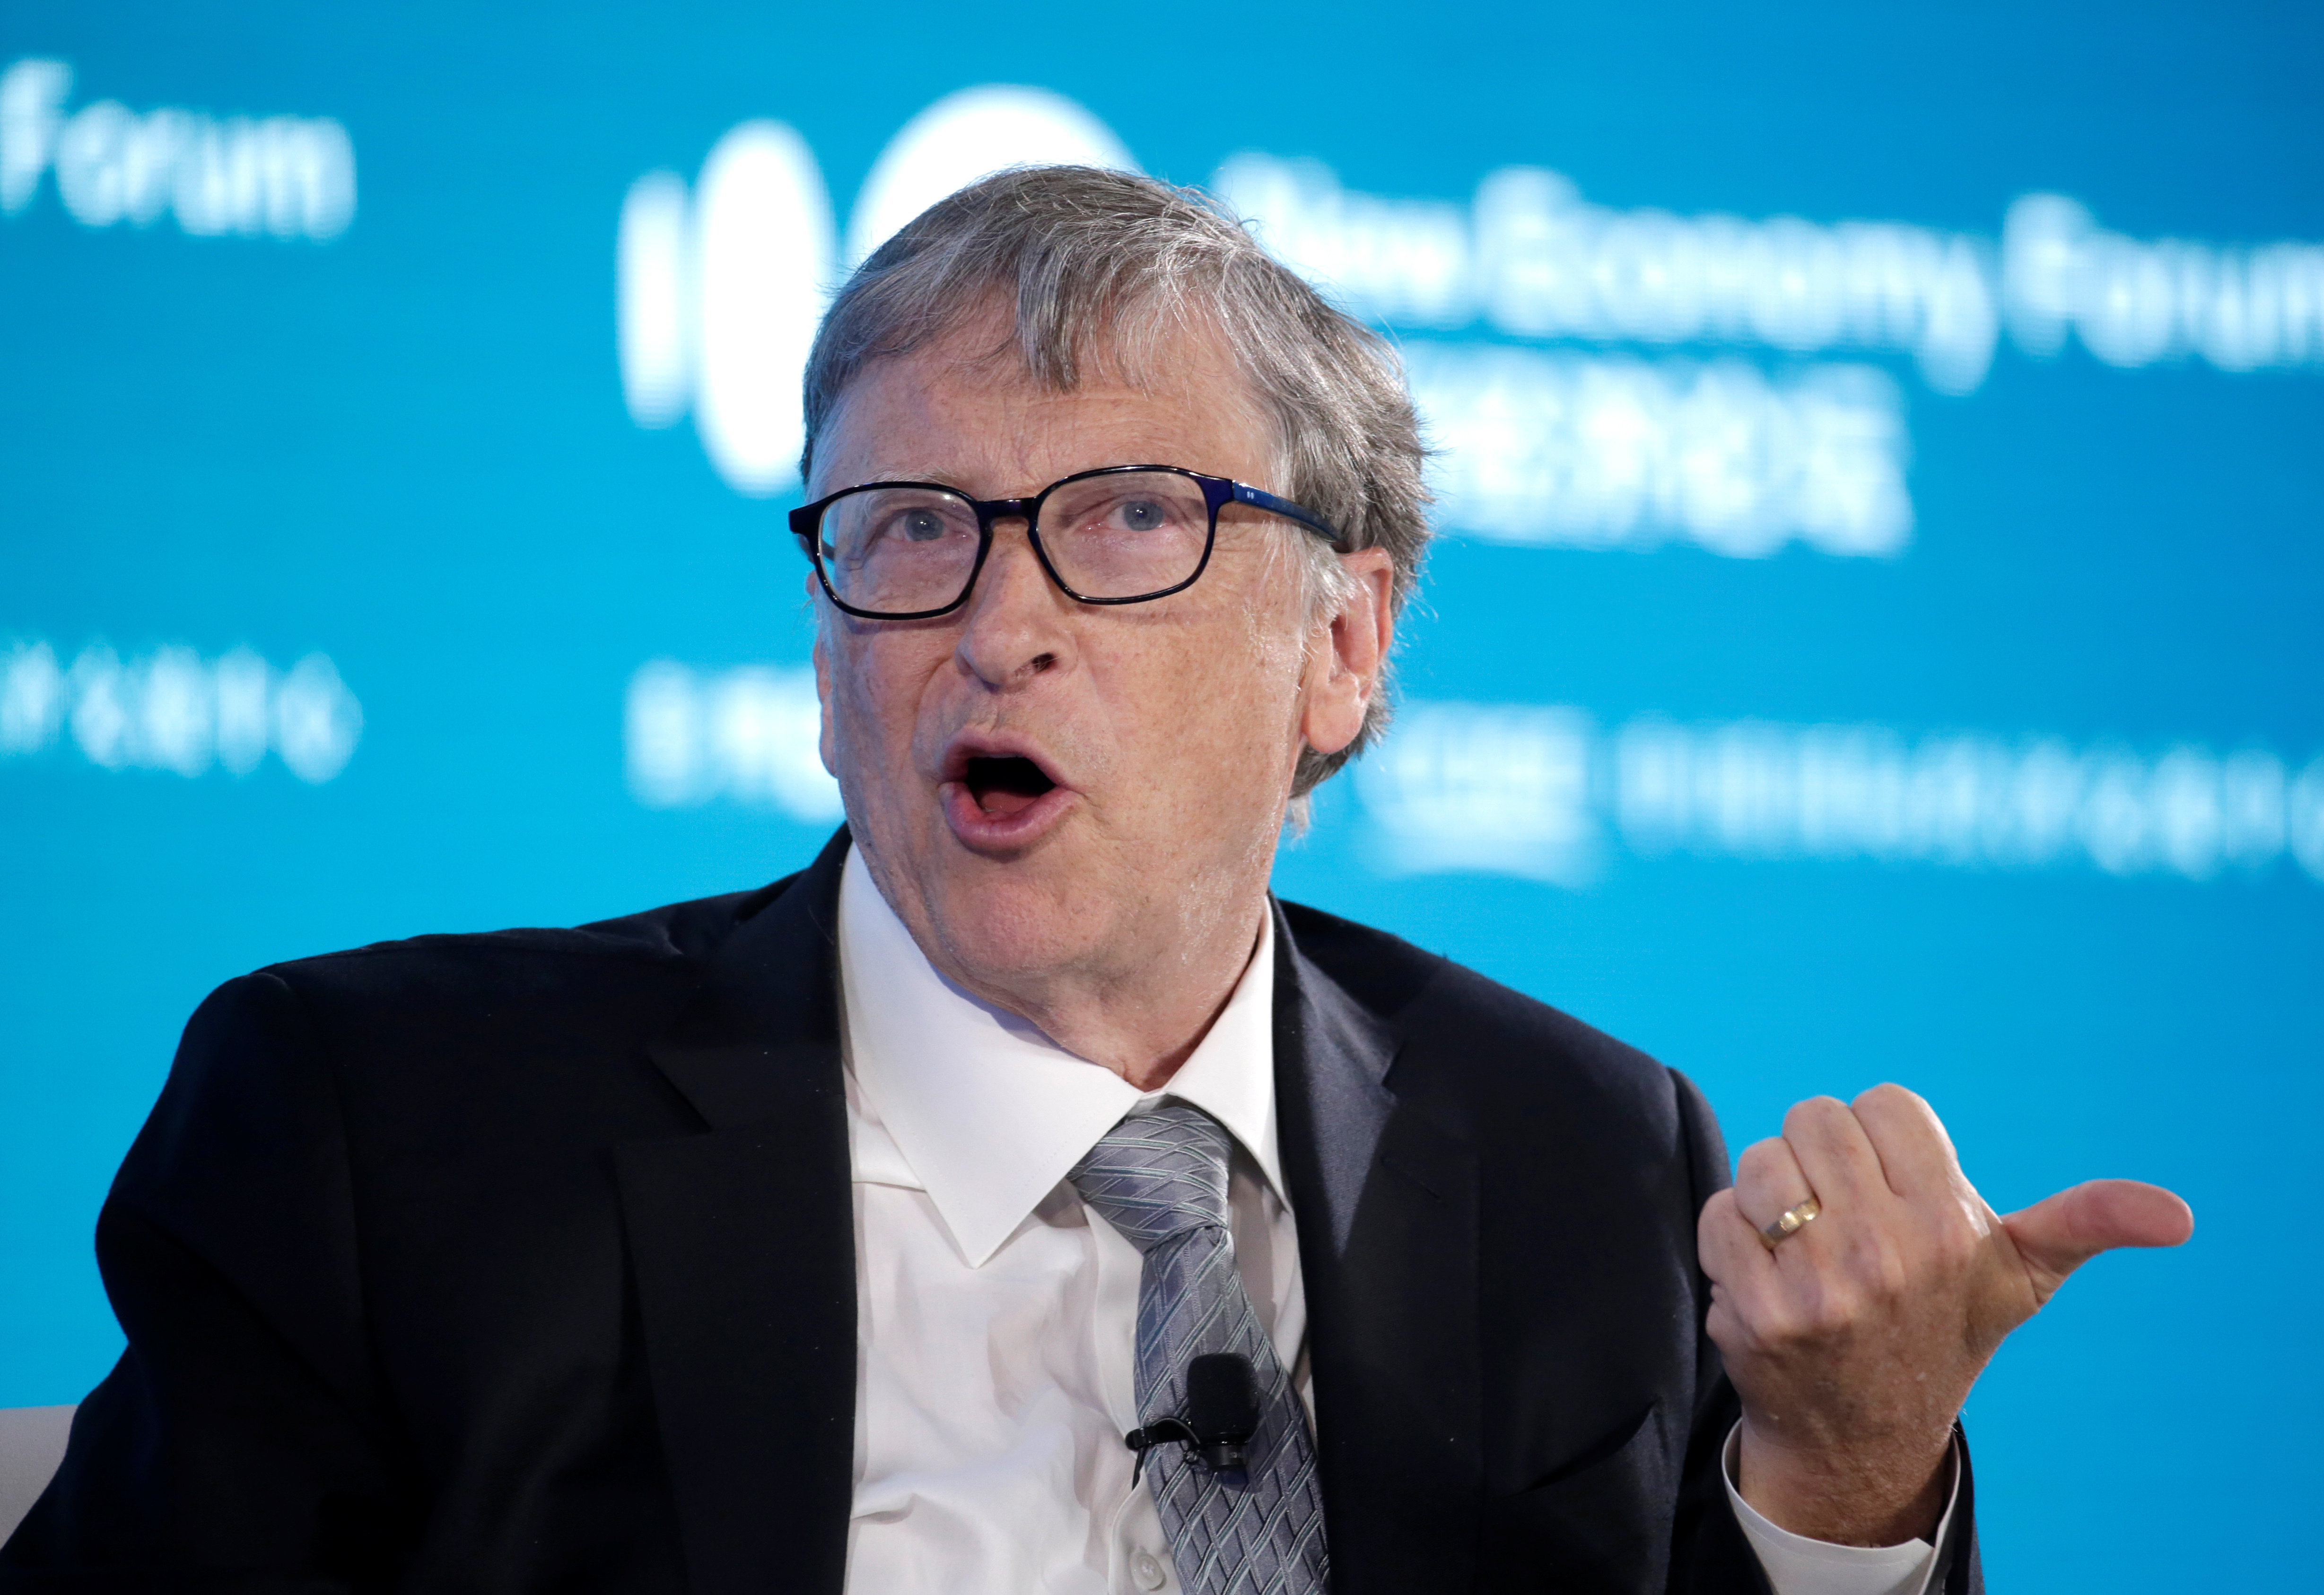 Bill Gates, Co-Chair of Bill & Melinda Gates Foundation, attends a conversation at the 2019 New Economy Forum in Beijing, China November 21, 2019. REUTERS/Jason Lee